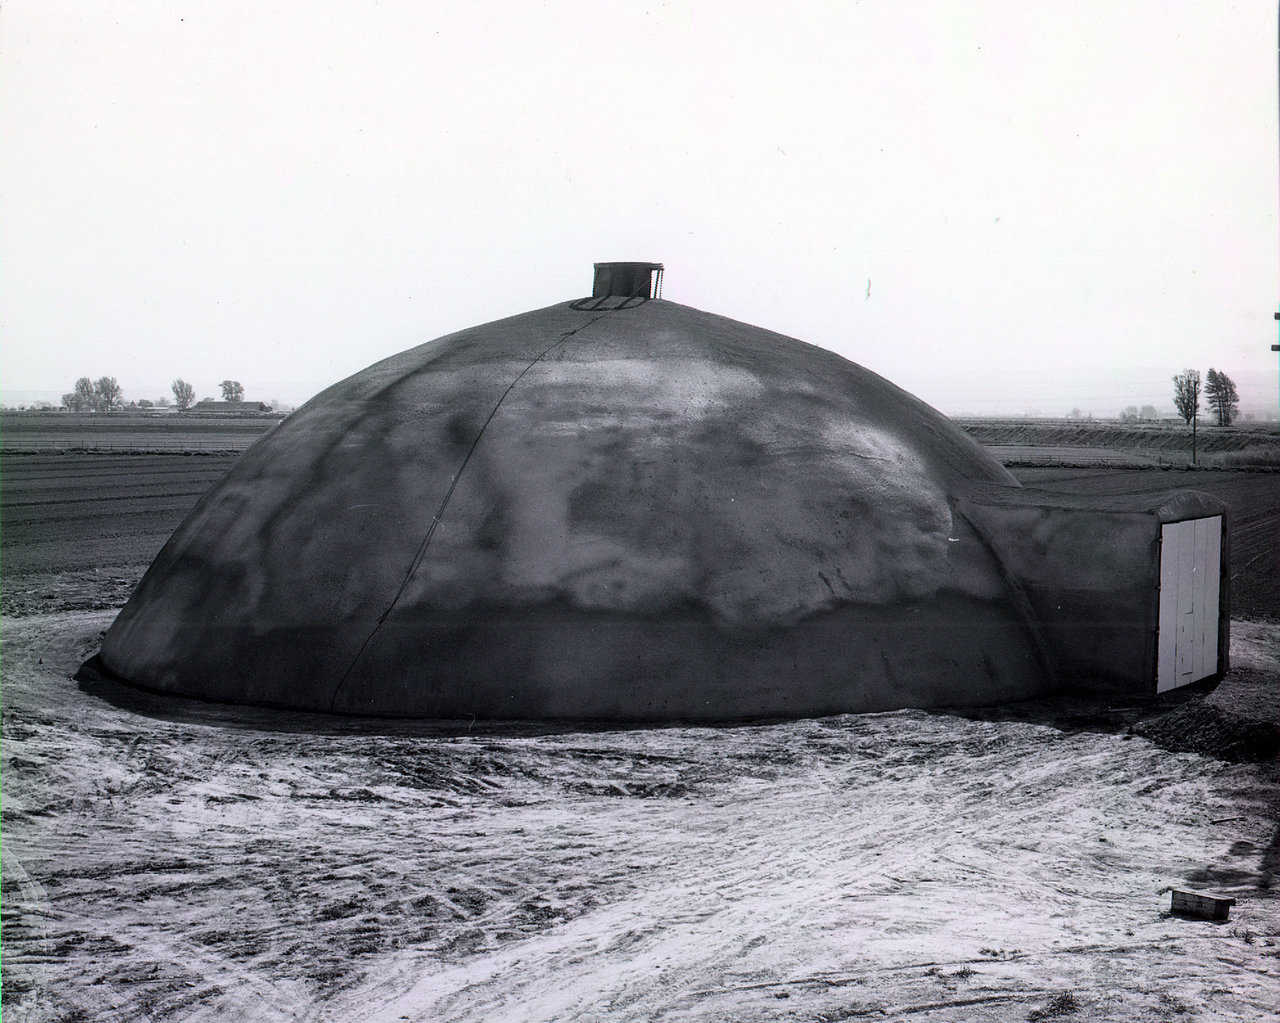 The first dome constructed using Monolithic's patented construction process. Shelley, Idaho – April 1976.